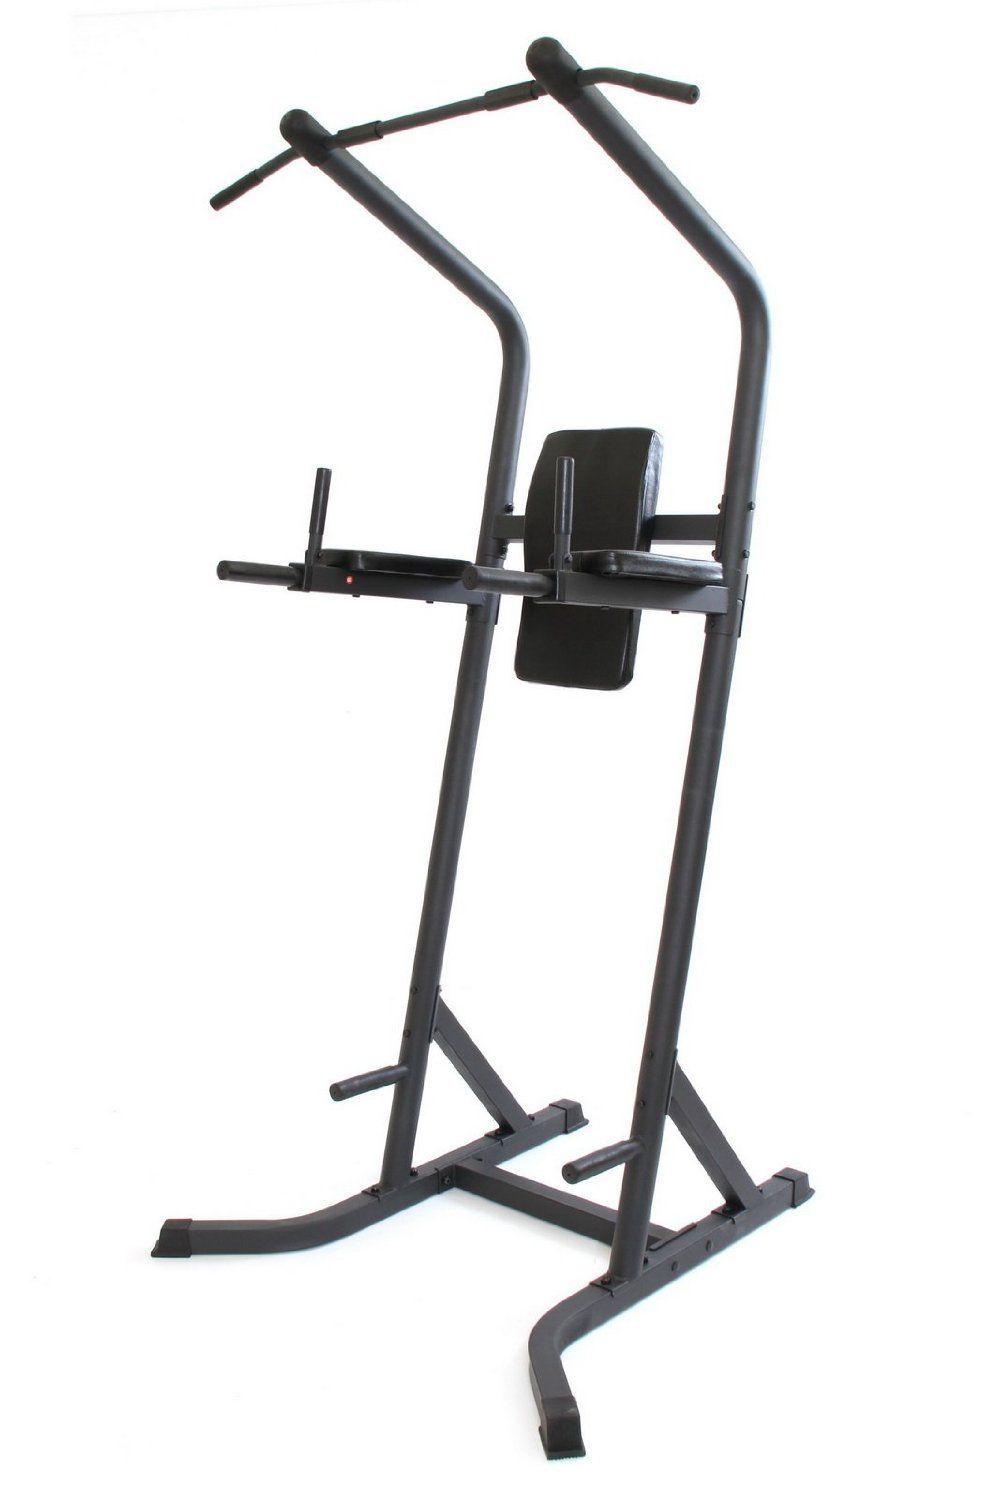 Body Masters Gym Equipment  #gymequipment #bodymastersgymequipment